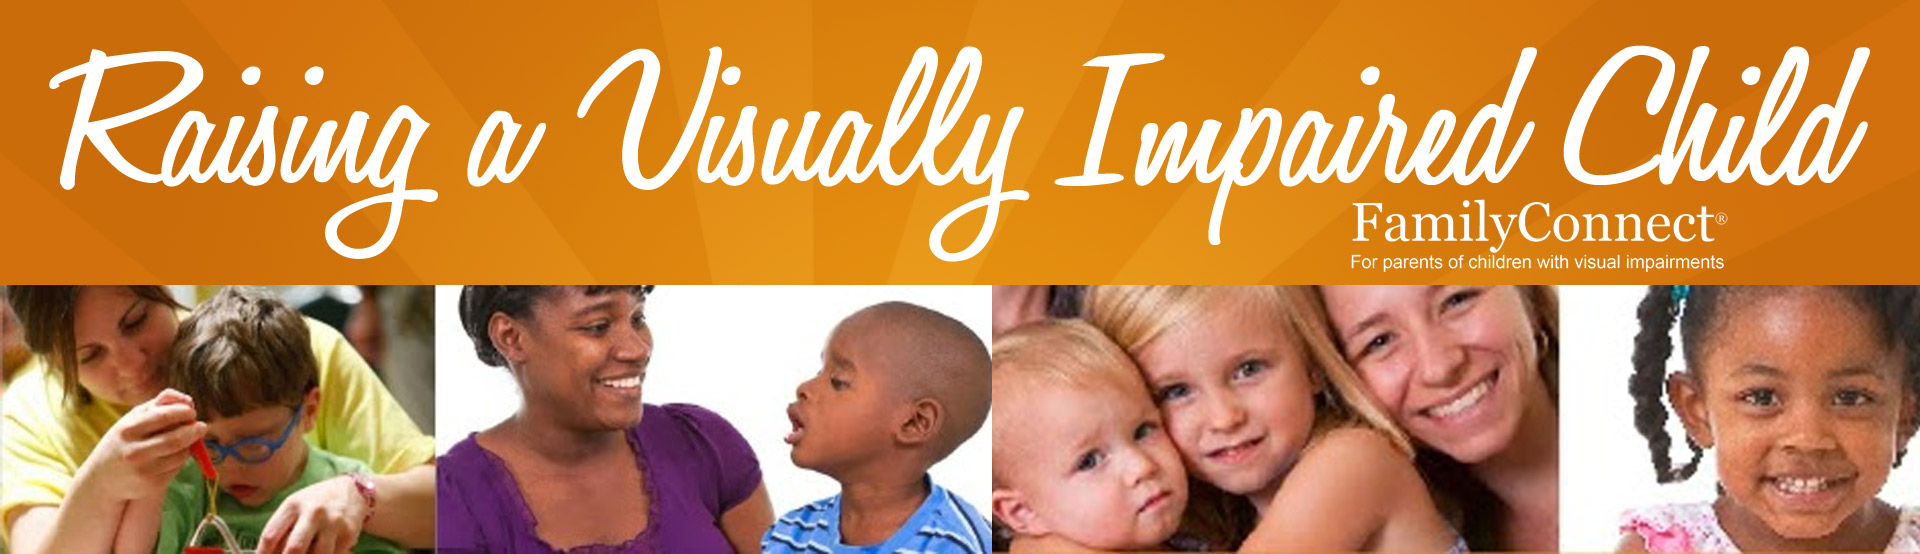 Raising A Visually Impaired Child: Personal Stories From Parents, Siblings, And Children With Visual Impairments